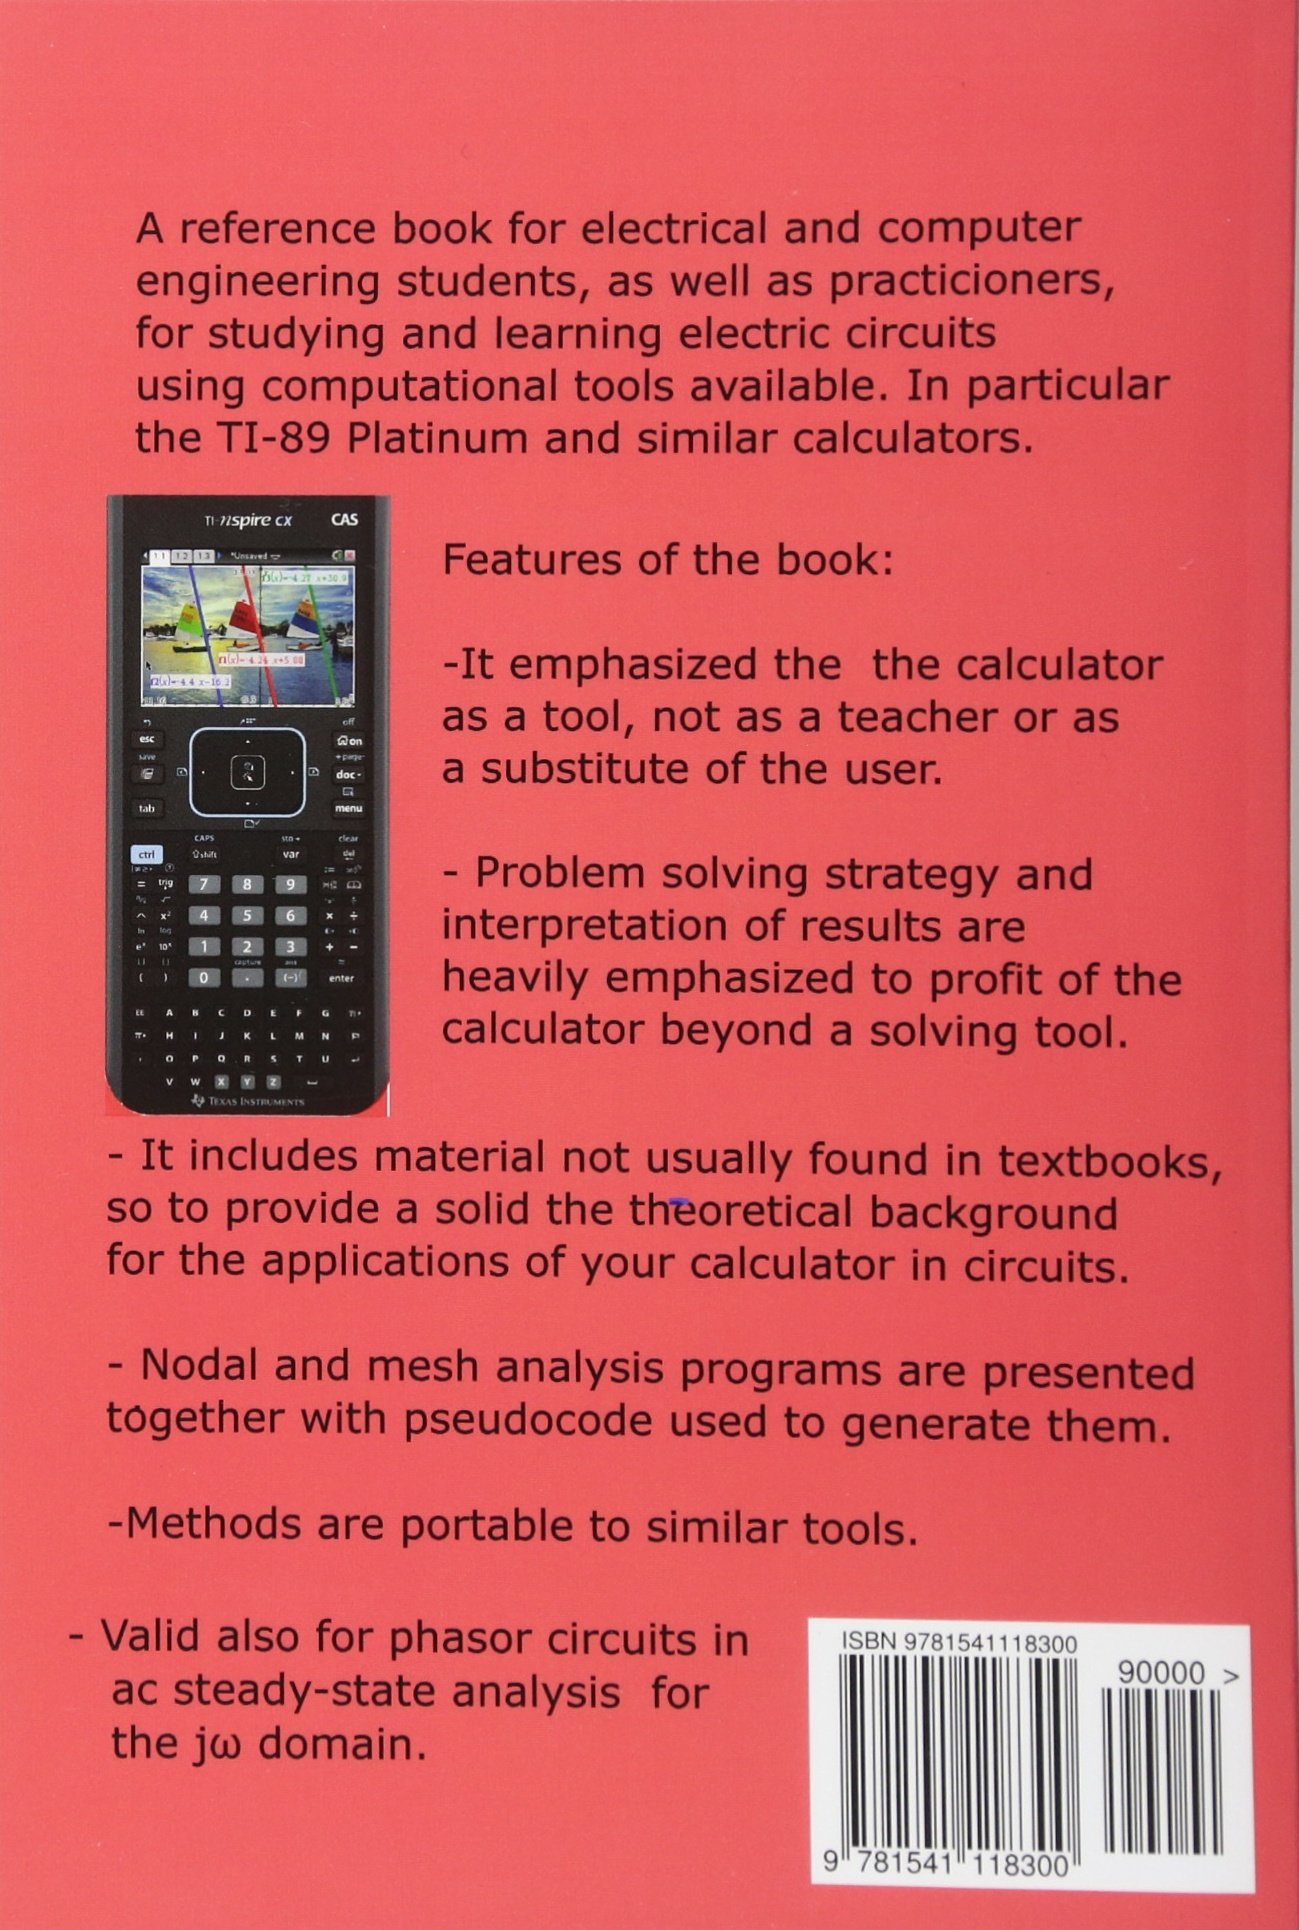 Buy Ti Nspire For Learning Circuits A Reference Tool Book Electric Electrical Engineering Learn And Computer Students Practicioners Volume 2 Graphic Calculators